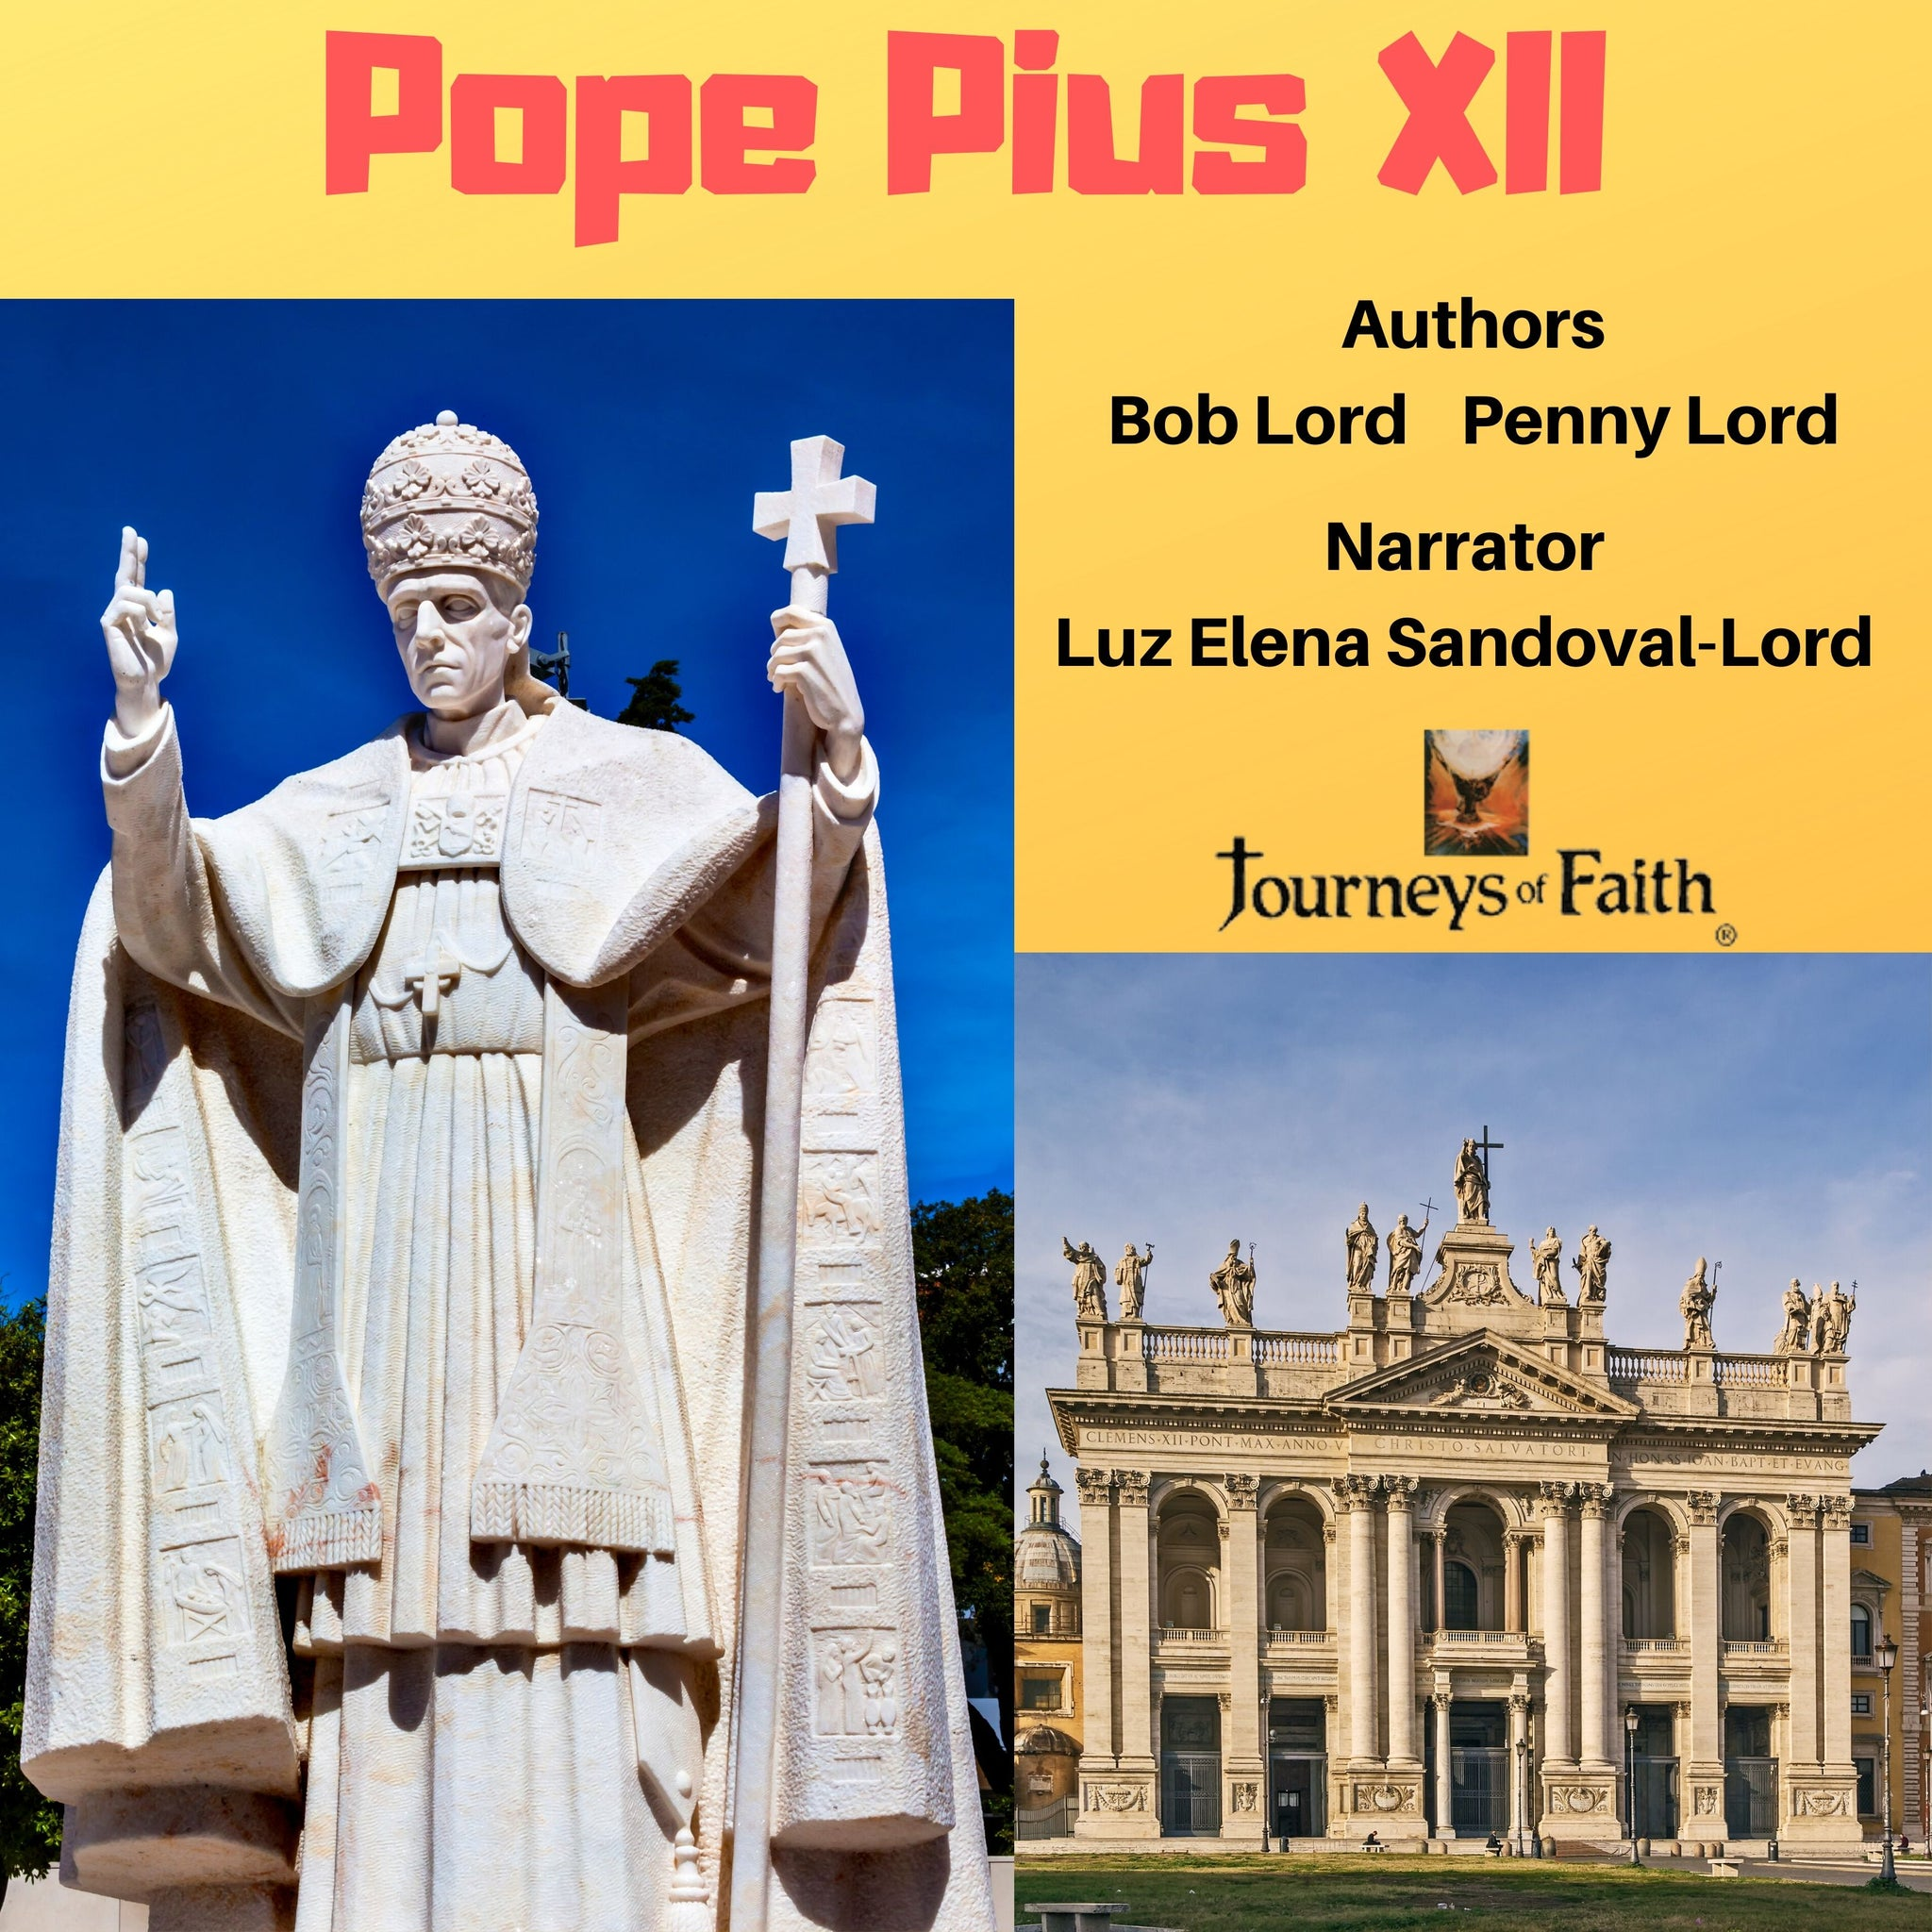 Pope Pius XII Audiobook Audiobook Bob and Penny Lord Ministry